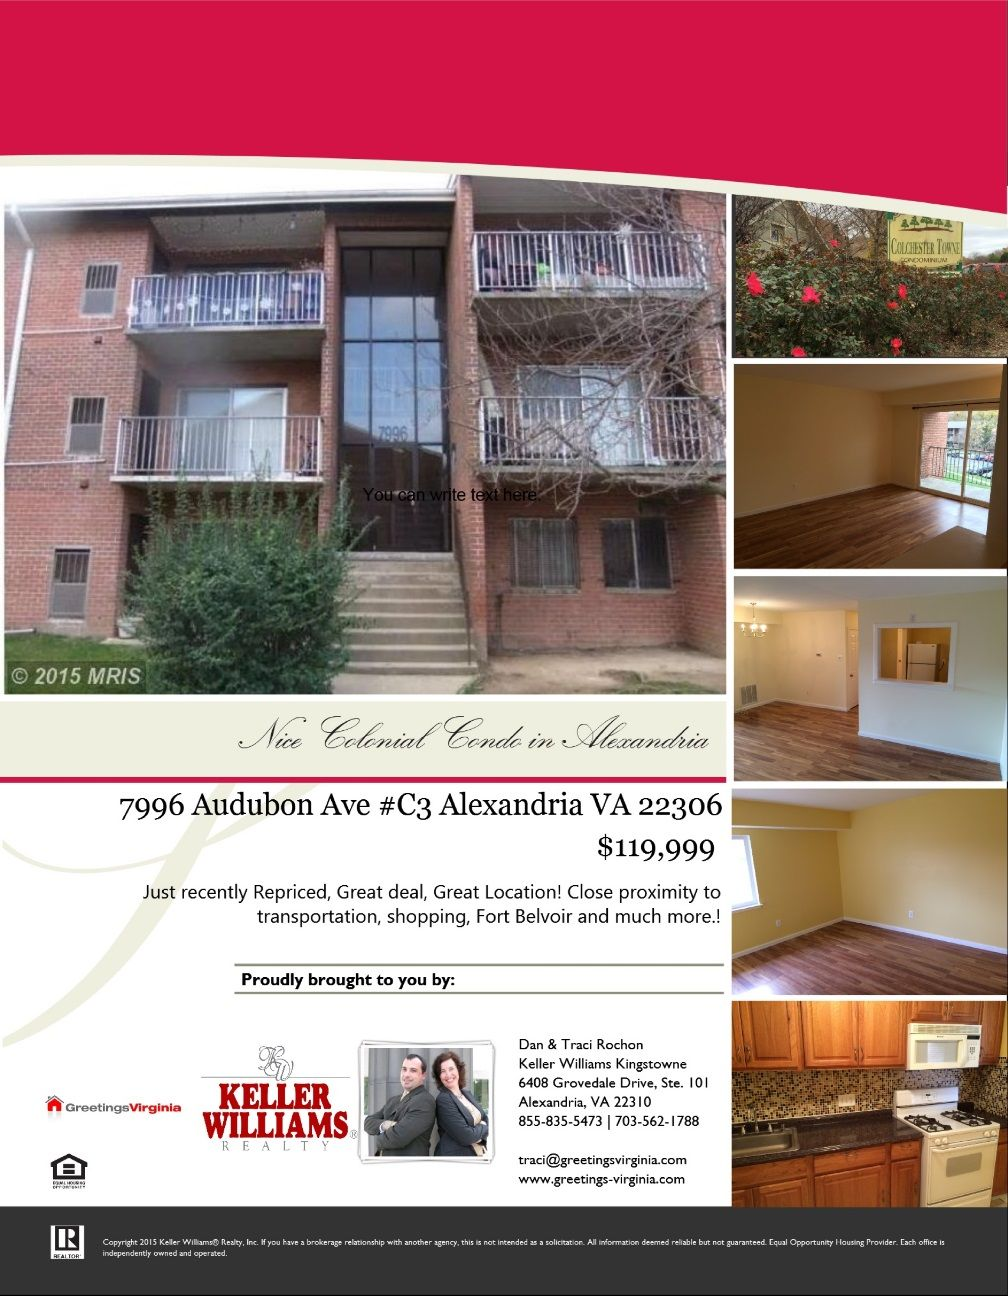 Just recently repriced great deal great location close